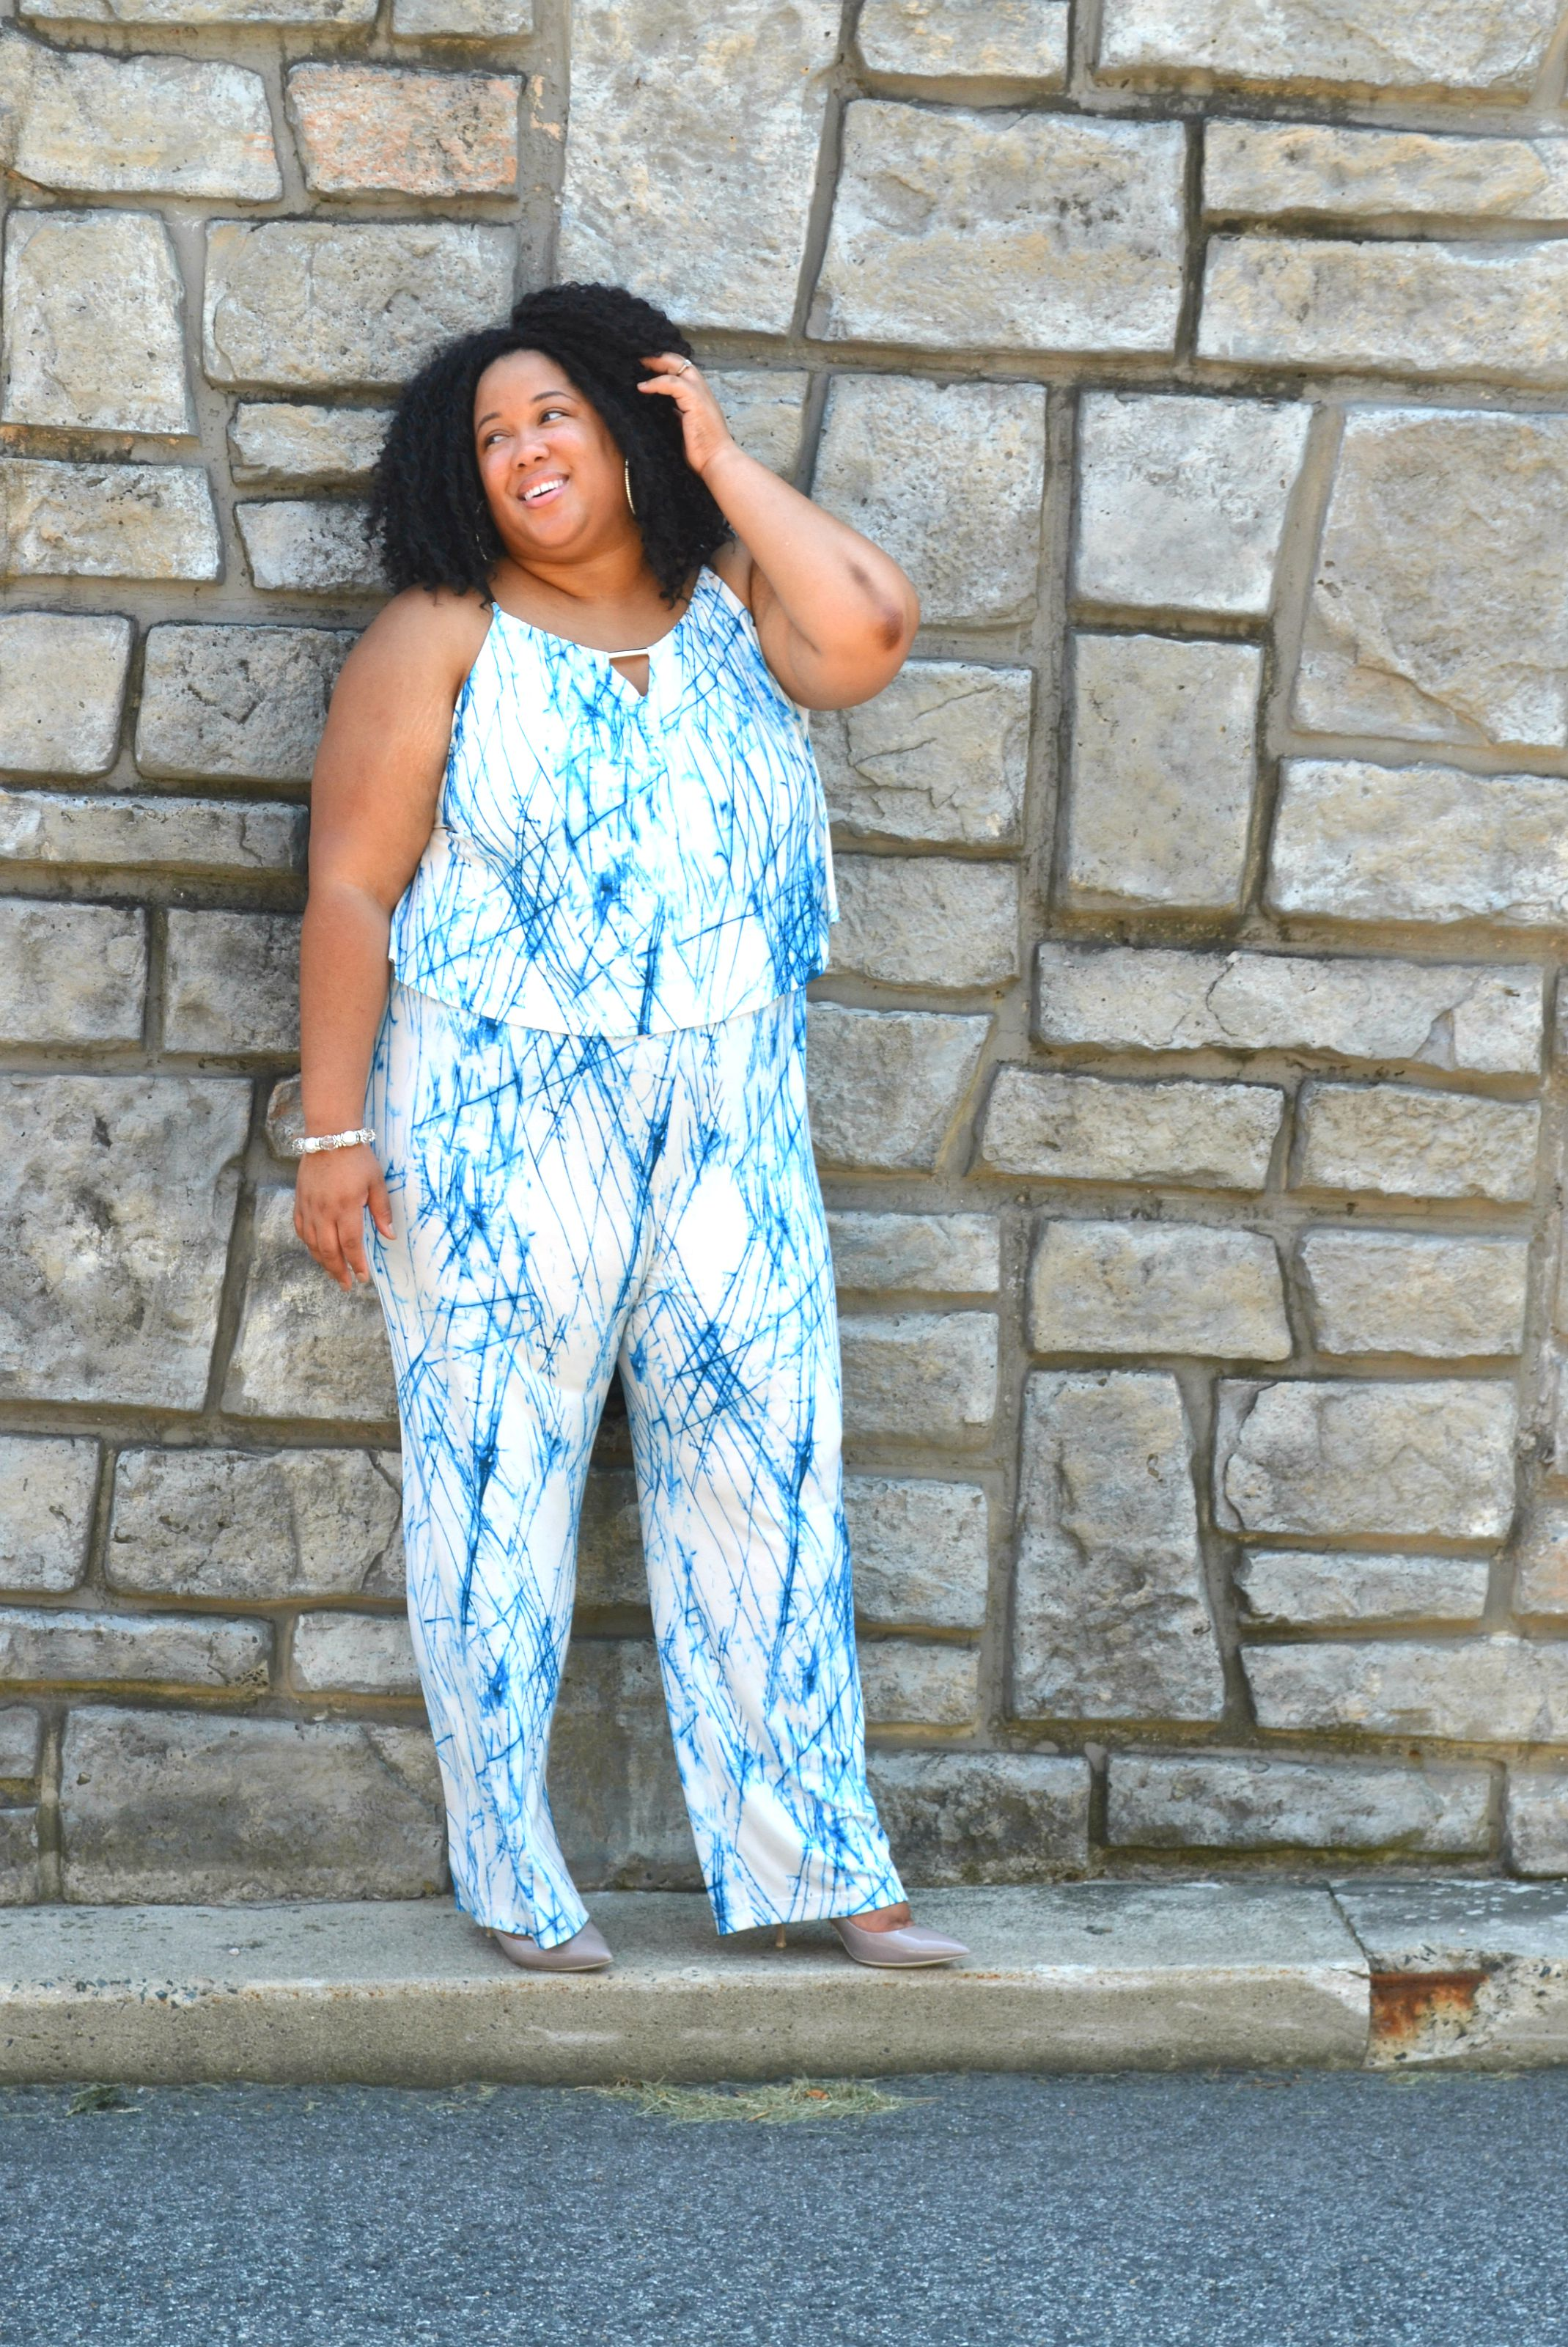 OOTD Styling a Jumpsuit